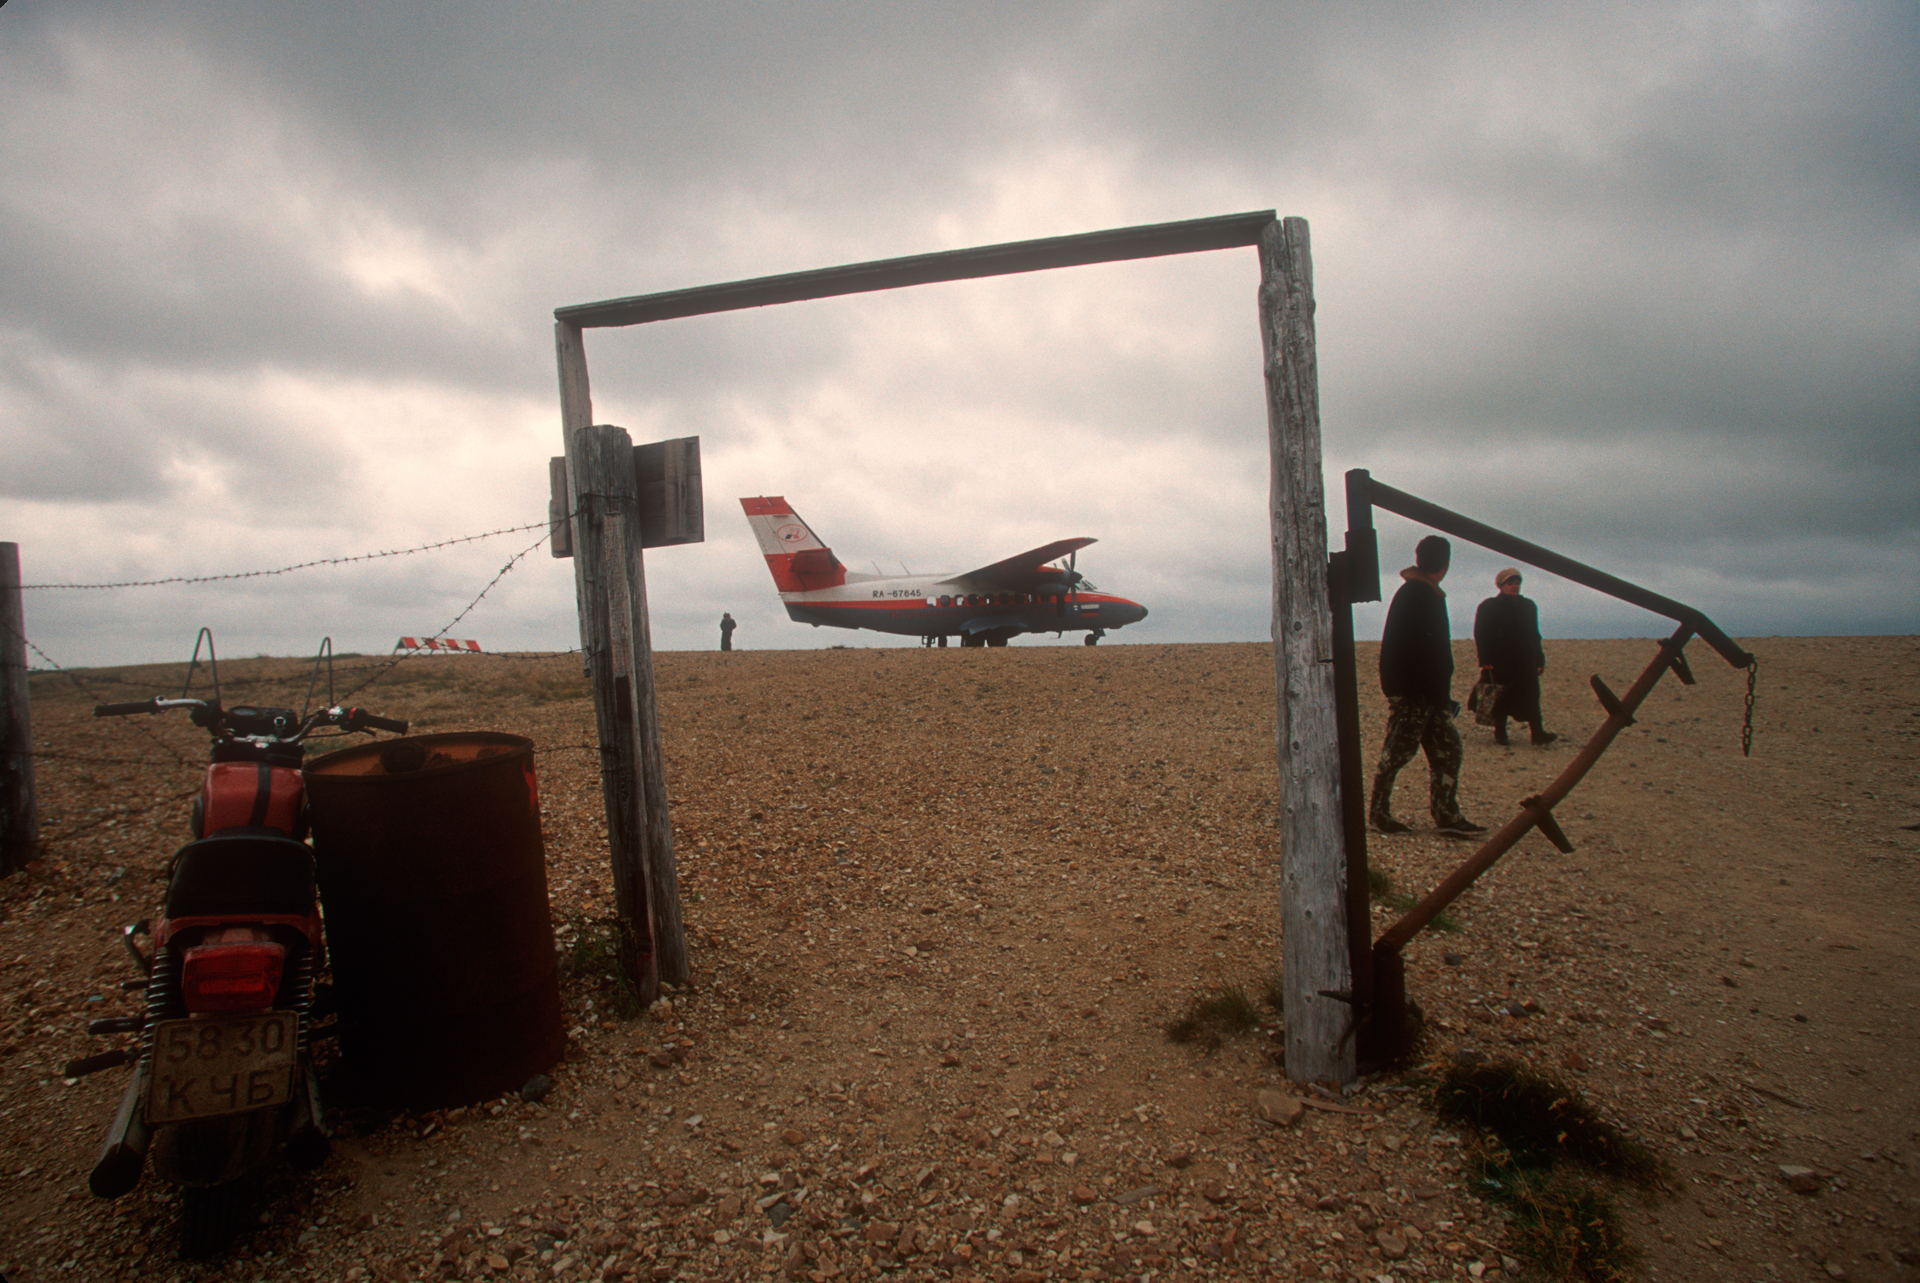 Today a tiny airport connects the settlement of Nikolskoye with the Russian mainland.  Bering Island, Russia